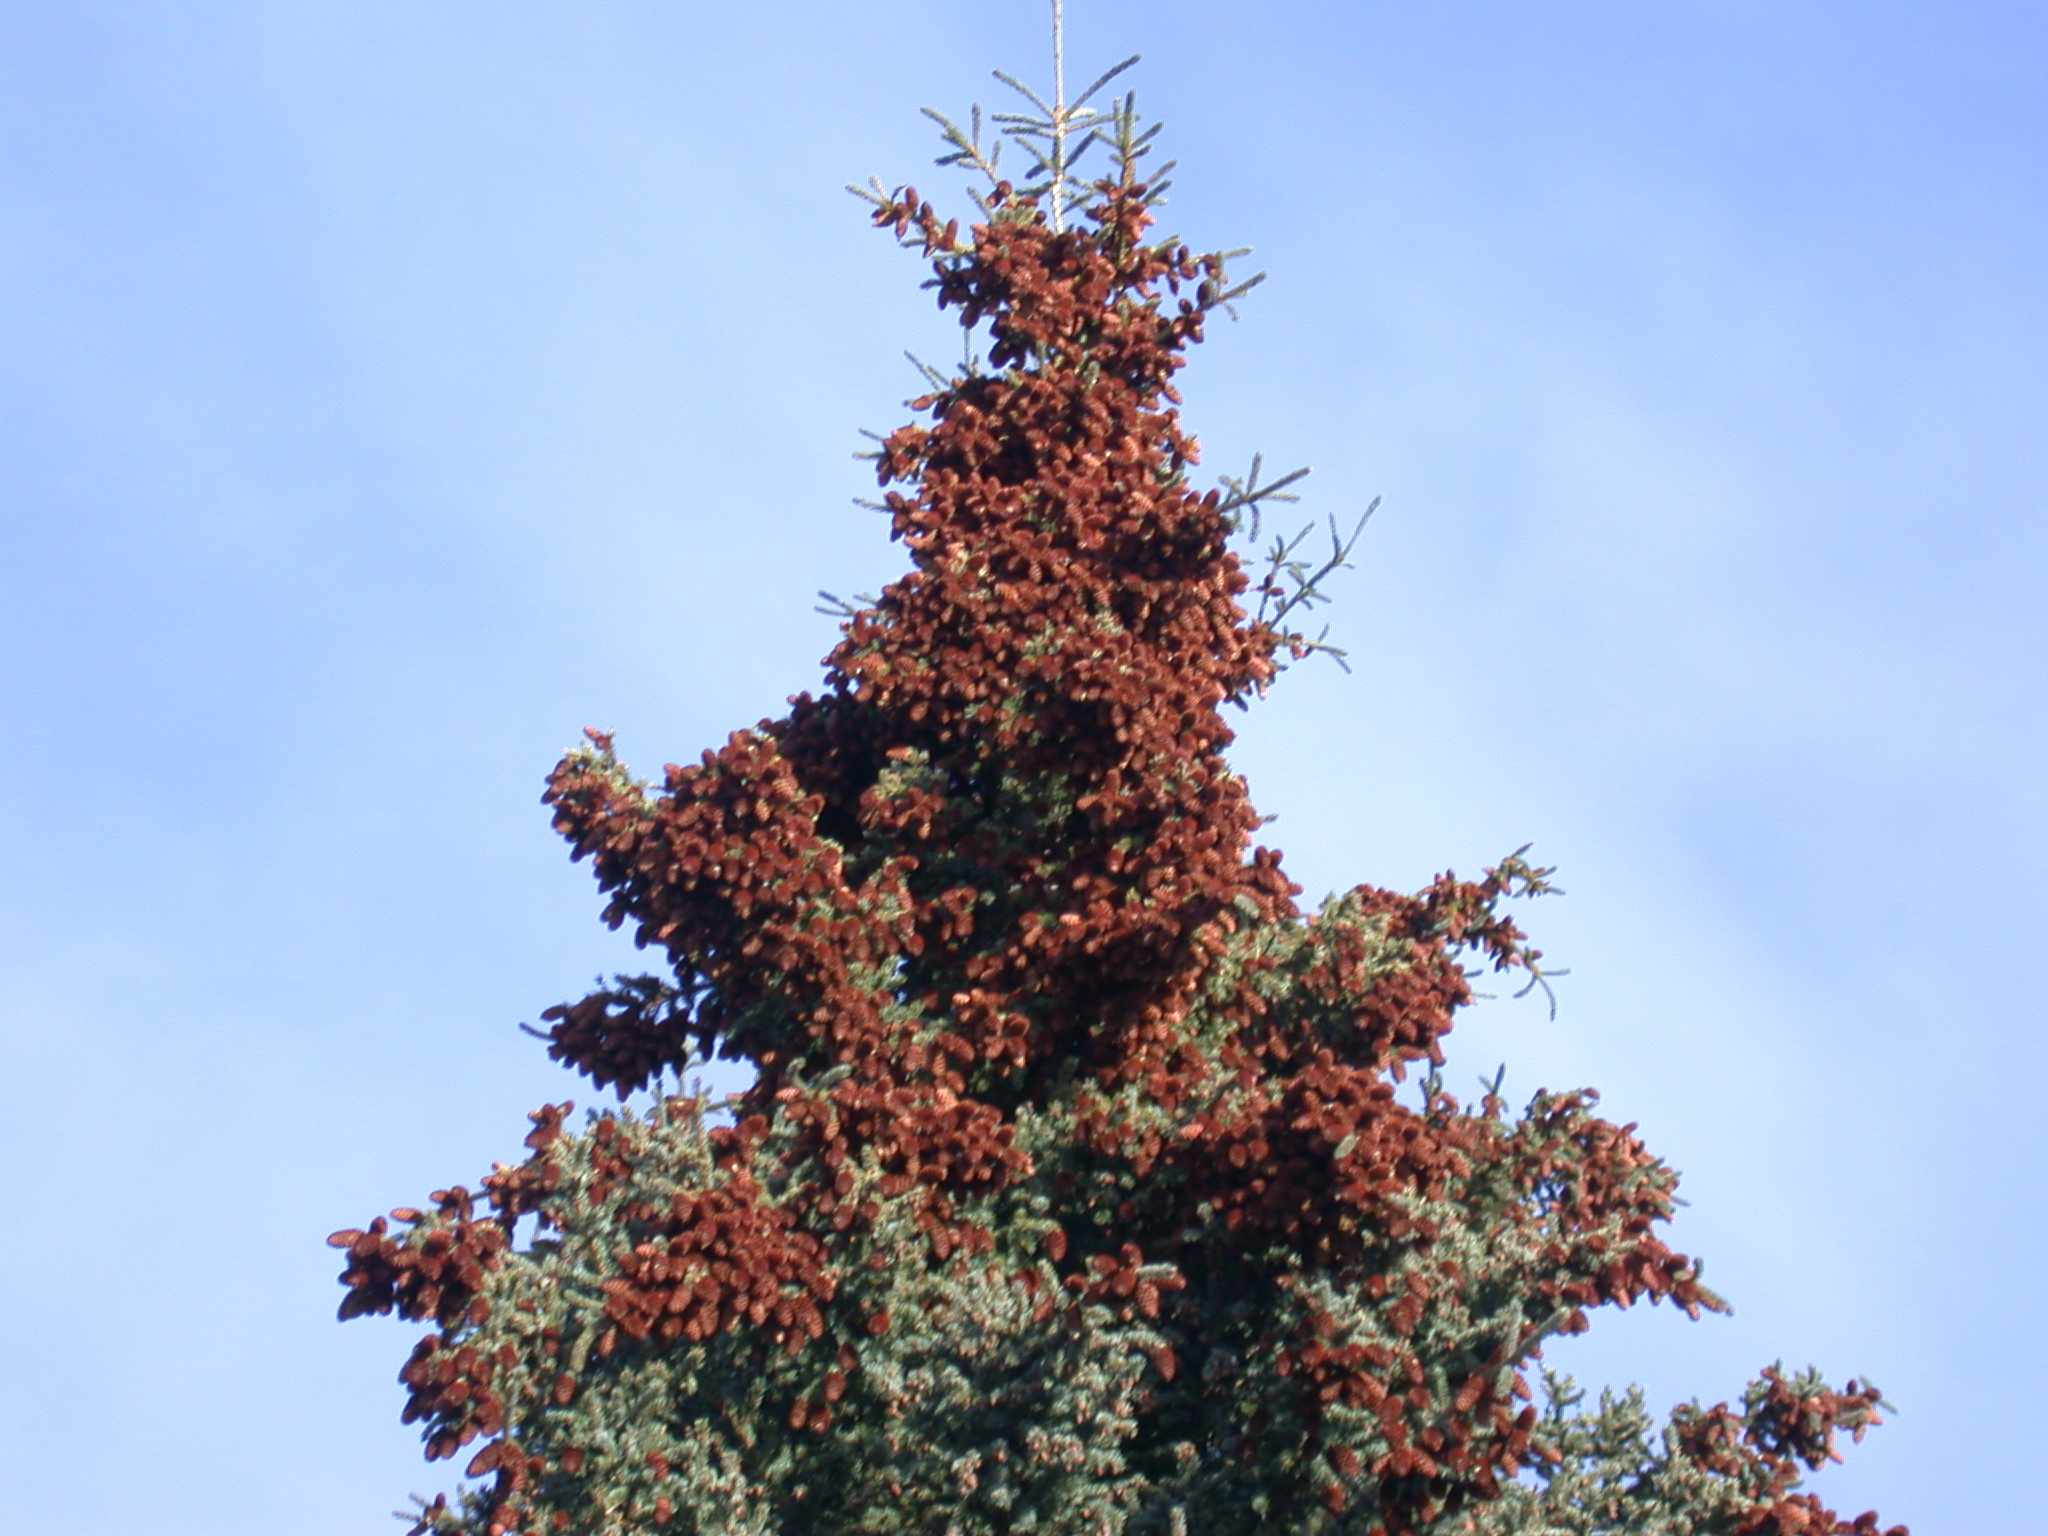 The top of a white spruce tree in the fall of a year with a high reproduction 'mast event' (Photo: LaMontagne).